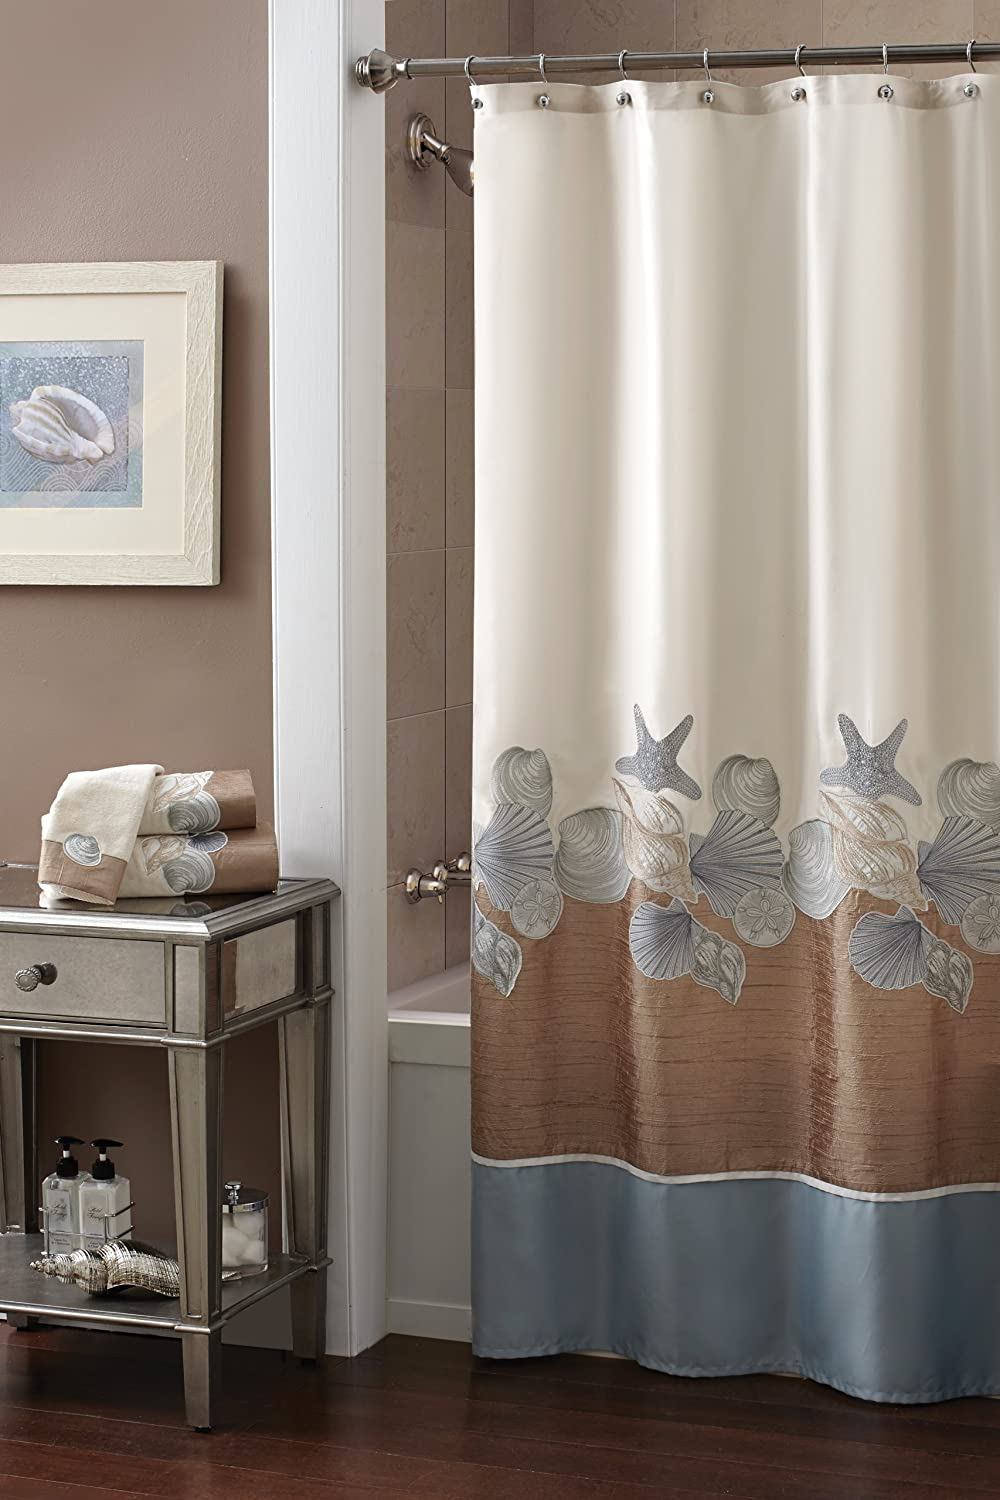 Amazon com  Croscill Shells Ashore Shower Curtain 70 by 72 Inch Natural Home Kitchen